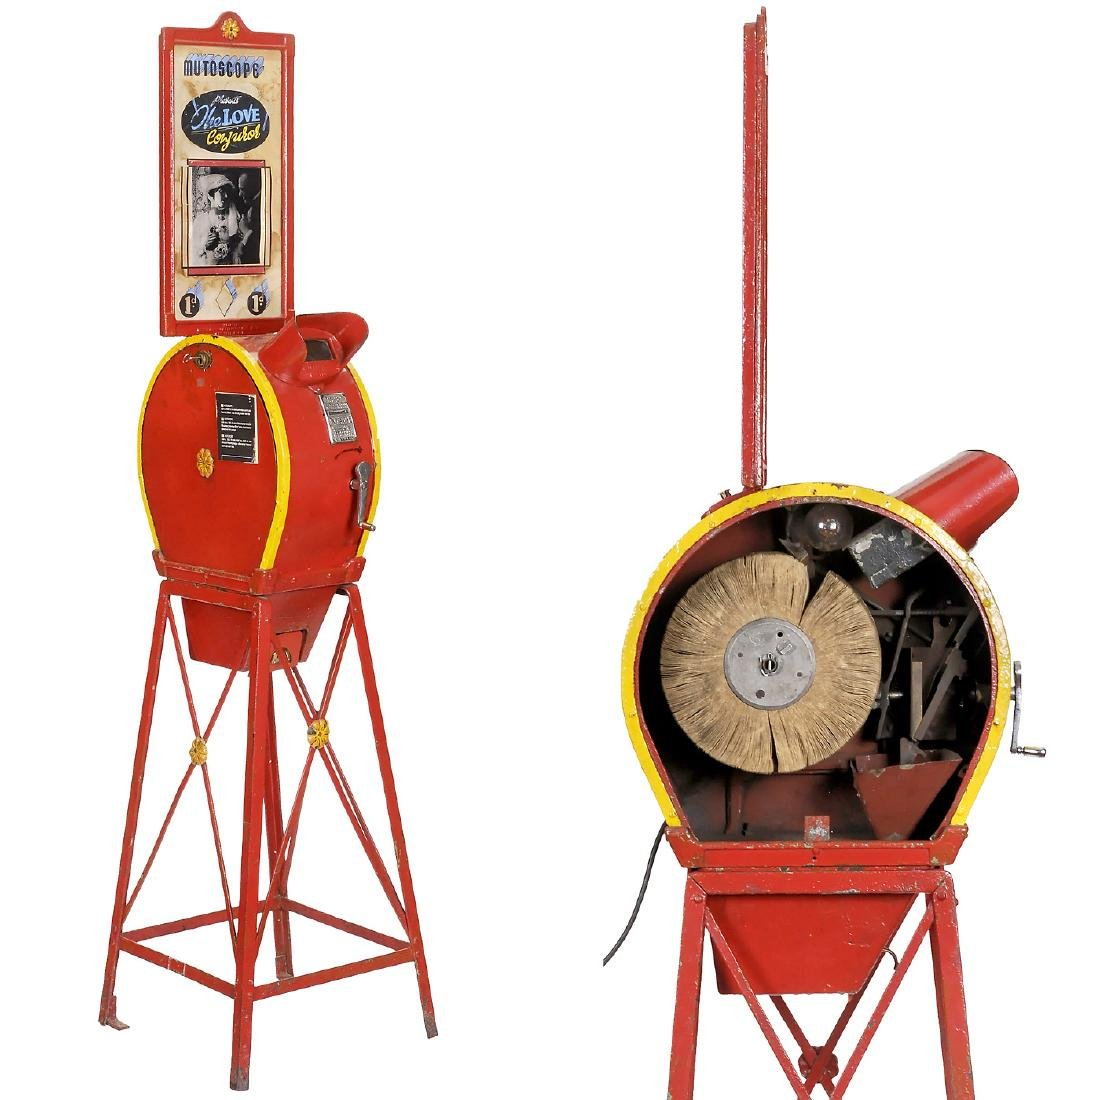 Original Coin-Operated Mutoscope with Reel, c. 1930